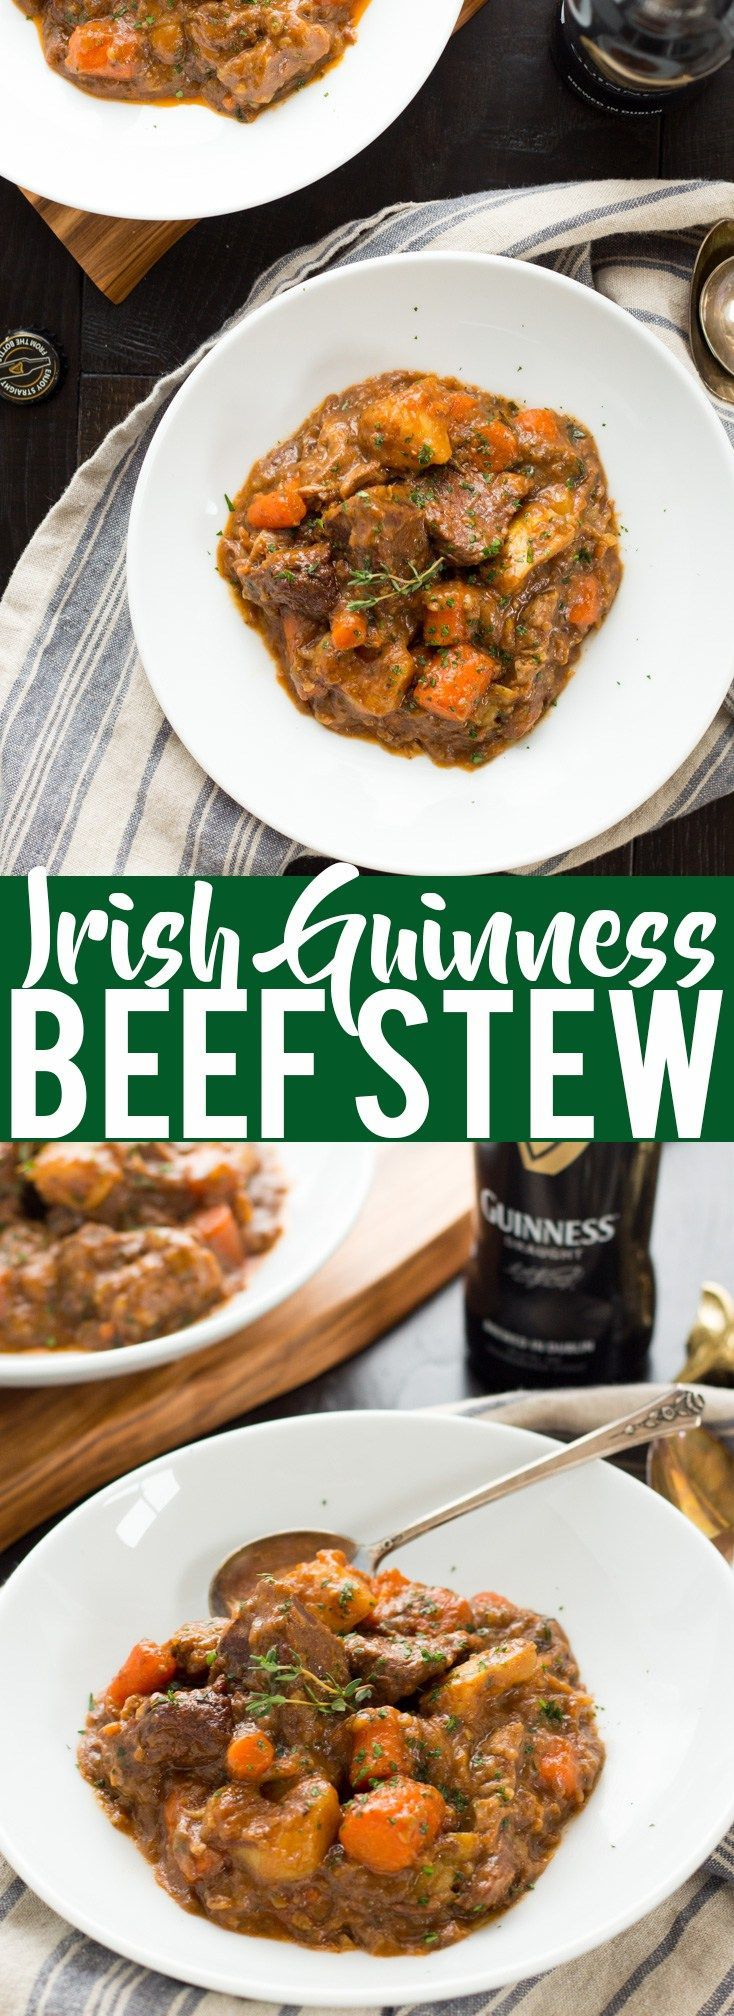 Guinness Irish Beef Stew | St. Patrick's Day Dinner | Irish Food | Beef Stew | Recipes using beer | Recipes using guinness | Irish stew